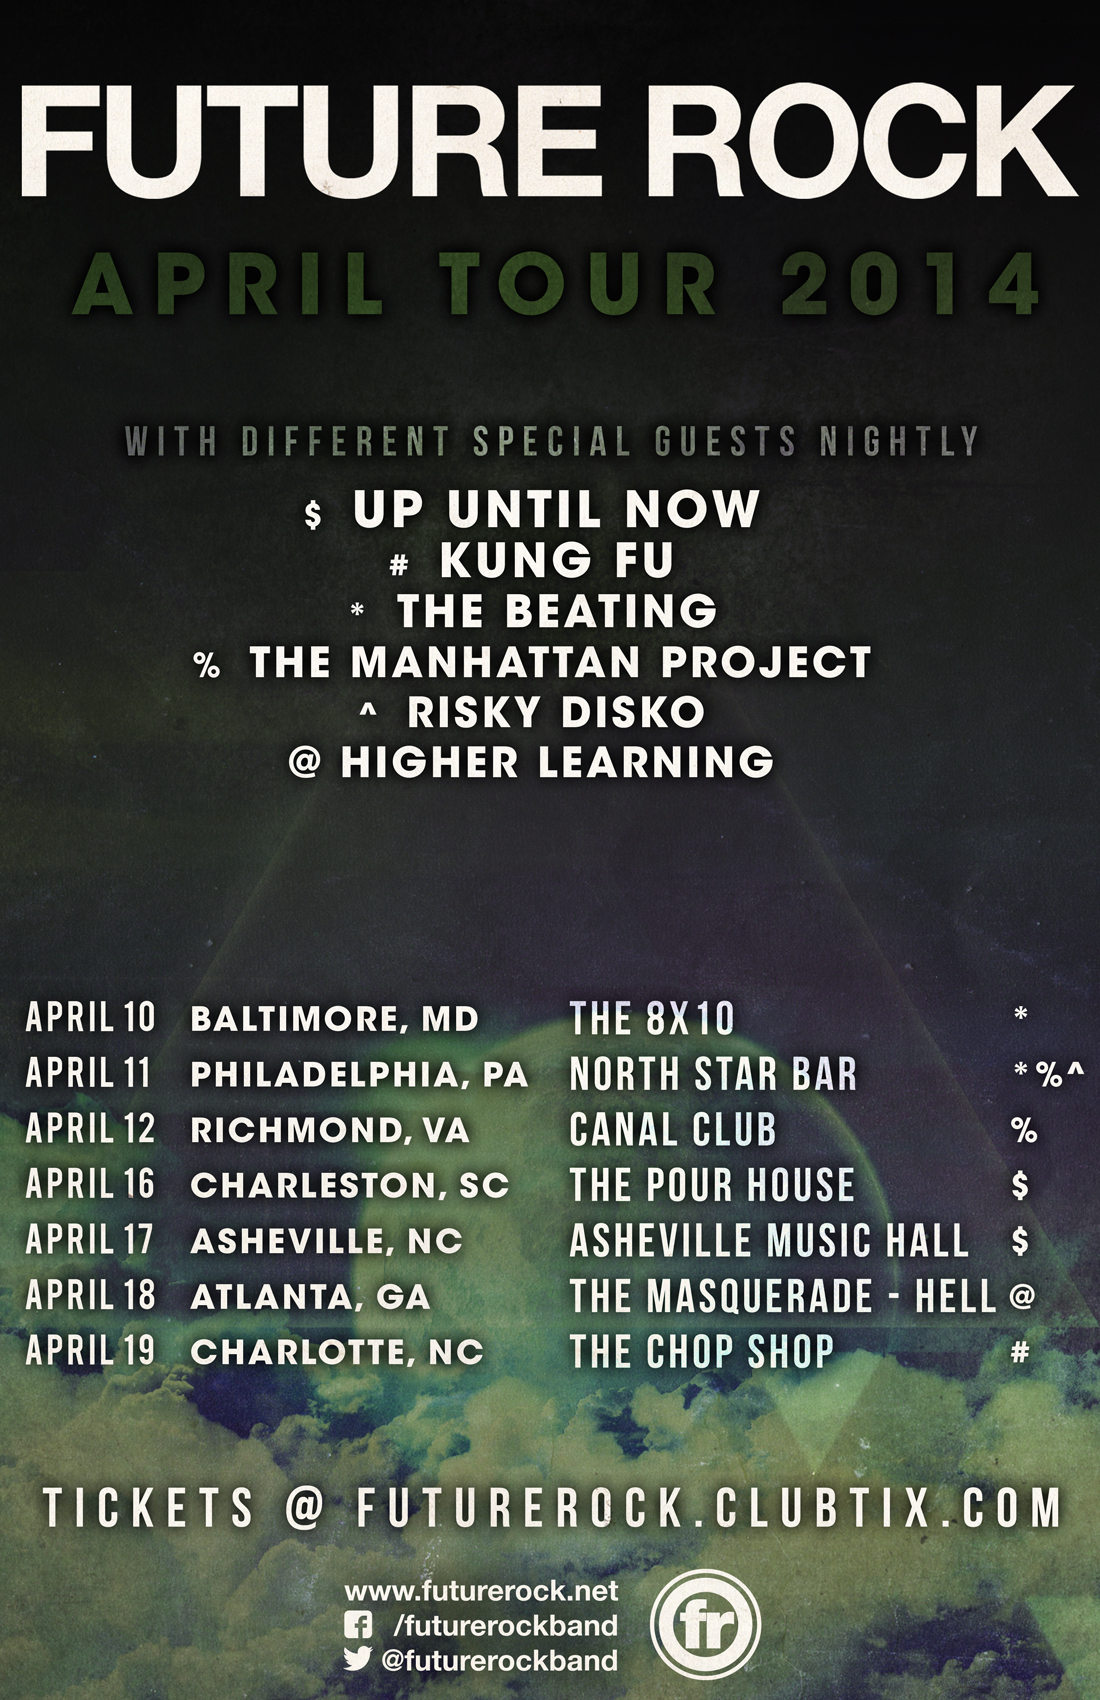 Future Rock April 2014 Tour